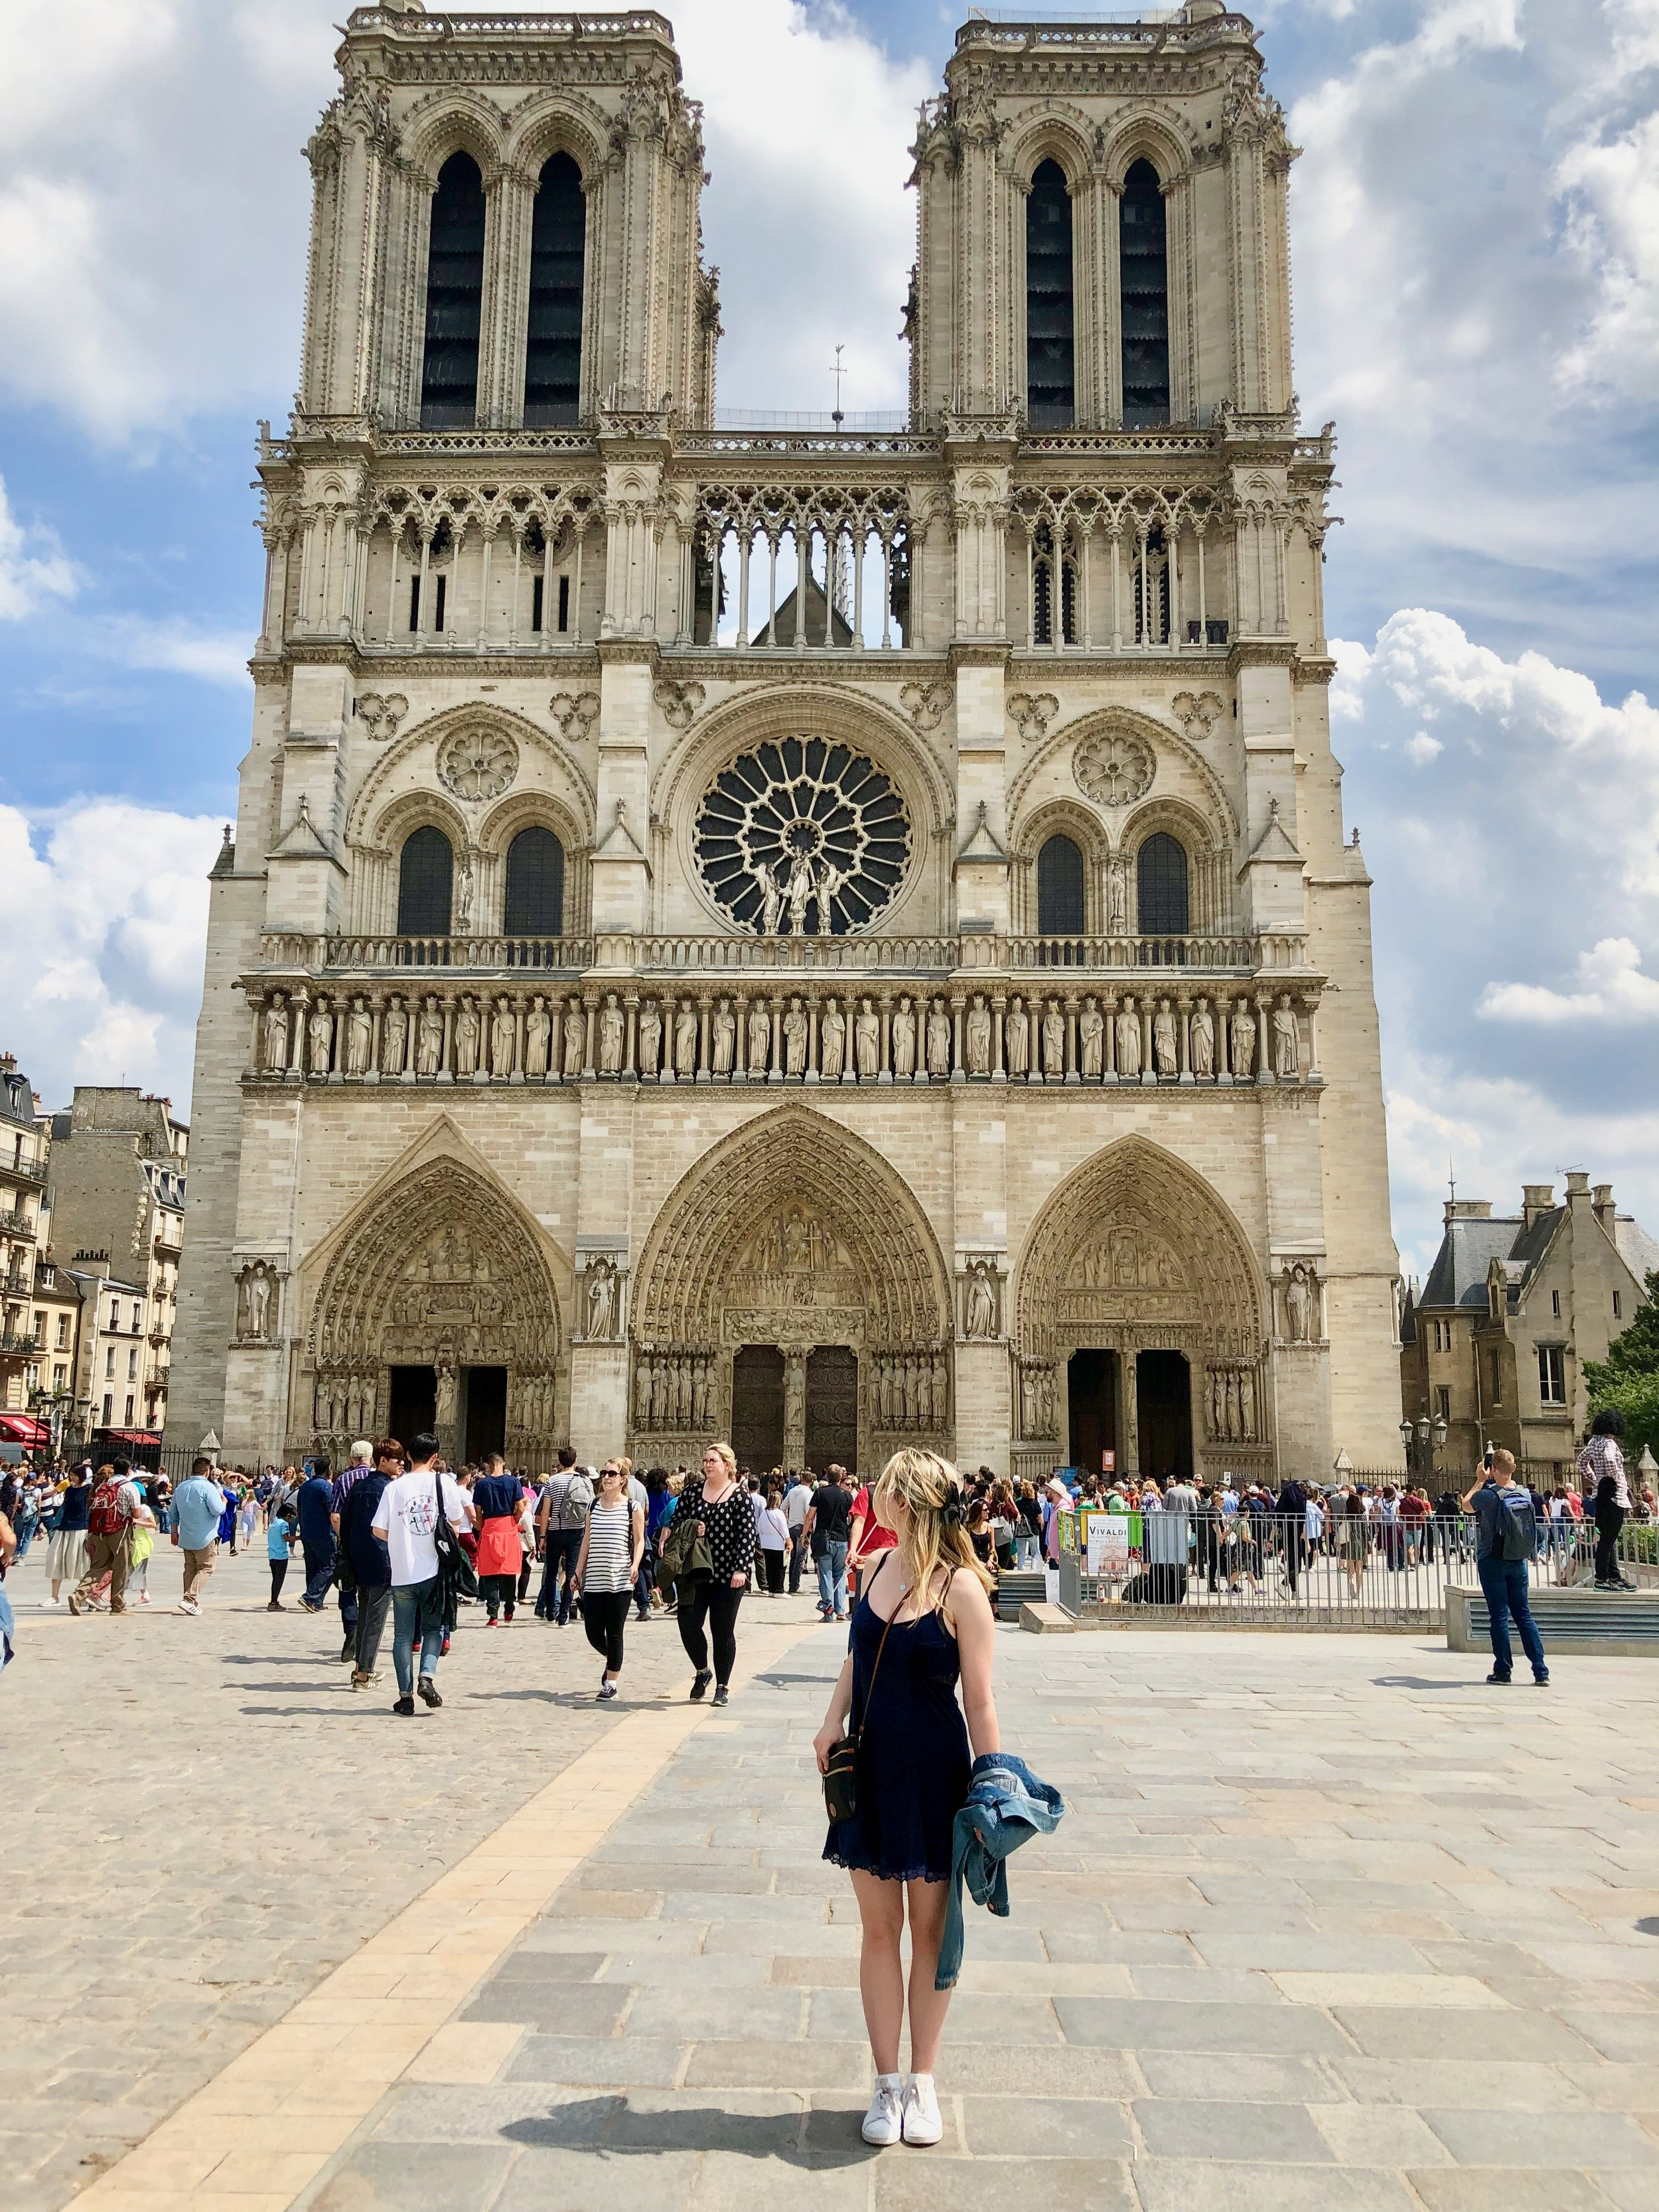 Notre Dame - Check out the beautiful architecture. I can just imagine Quasimodo up there ringing the bells.